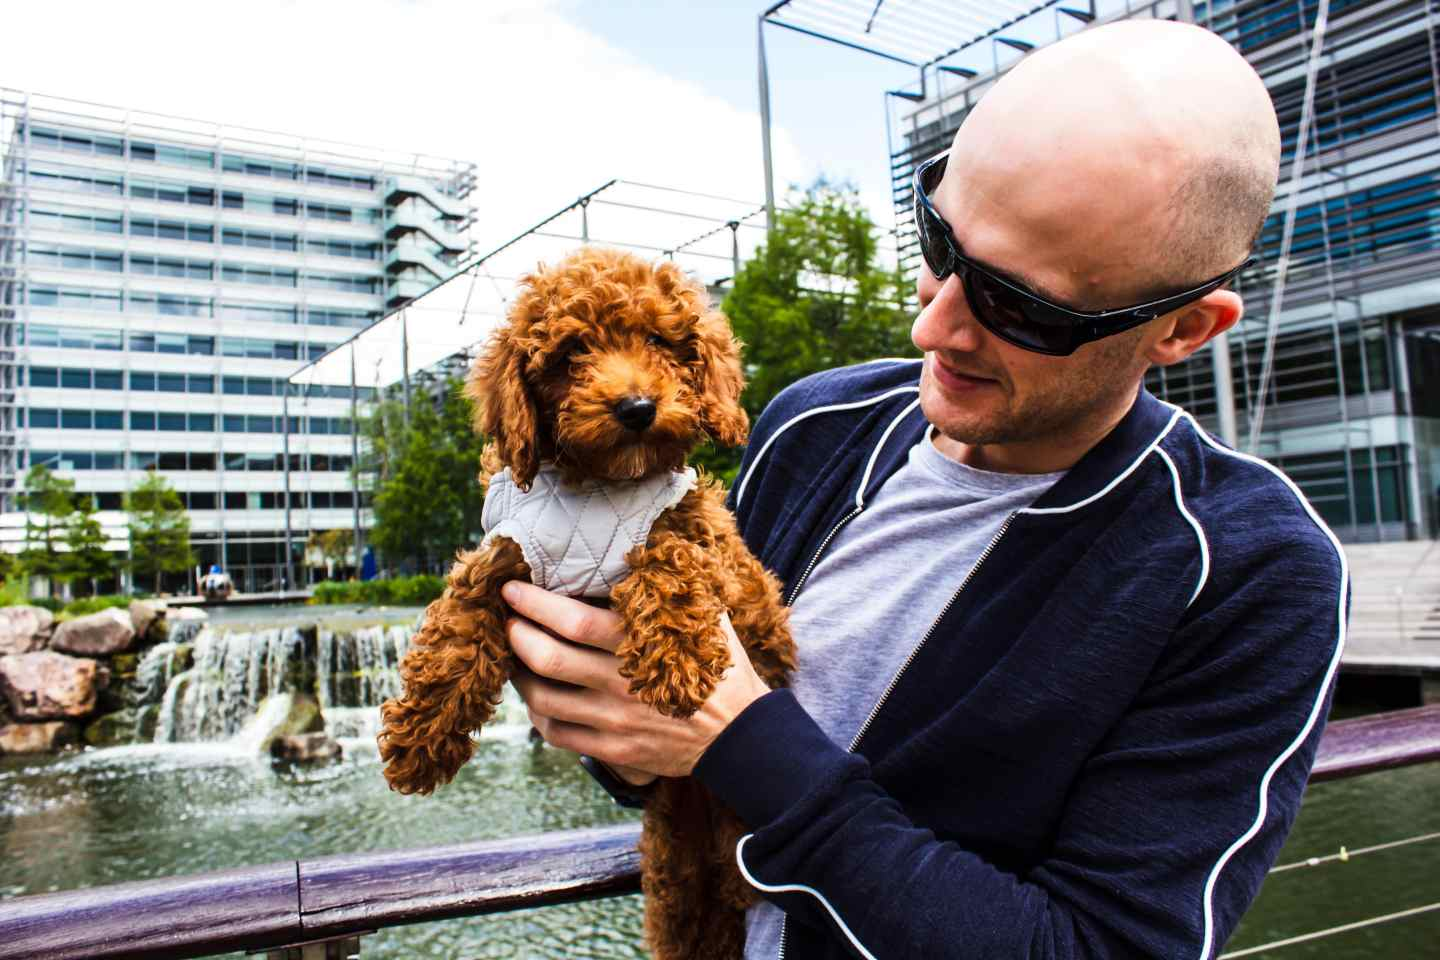 Me wearing my Orlebar Brown jacket holding a puppy